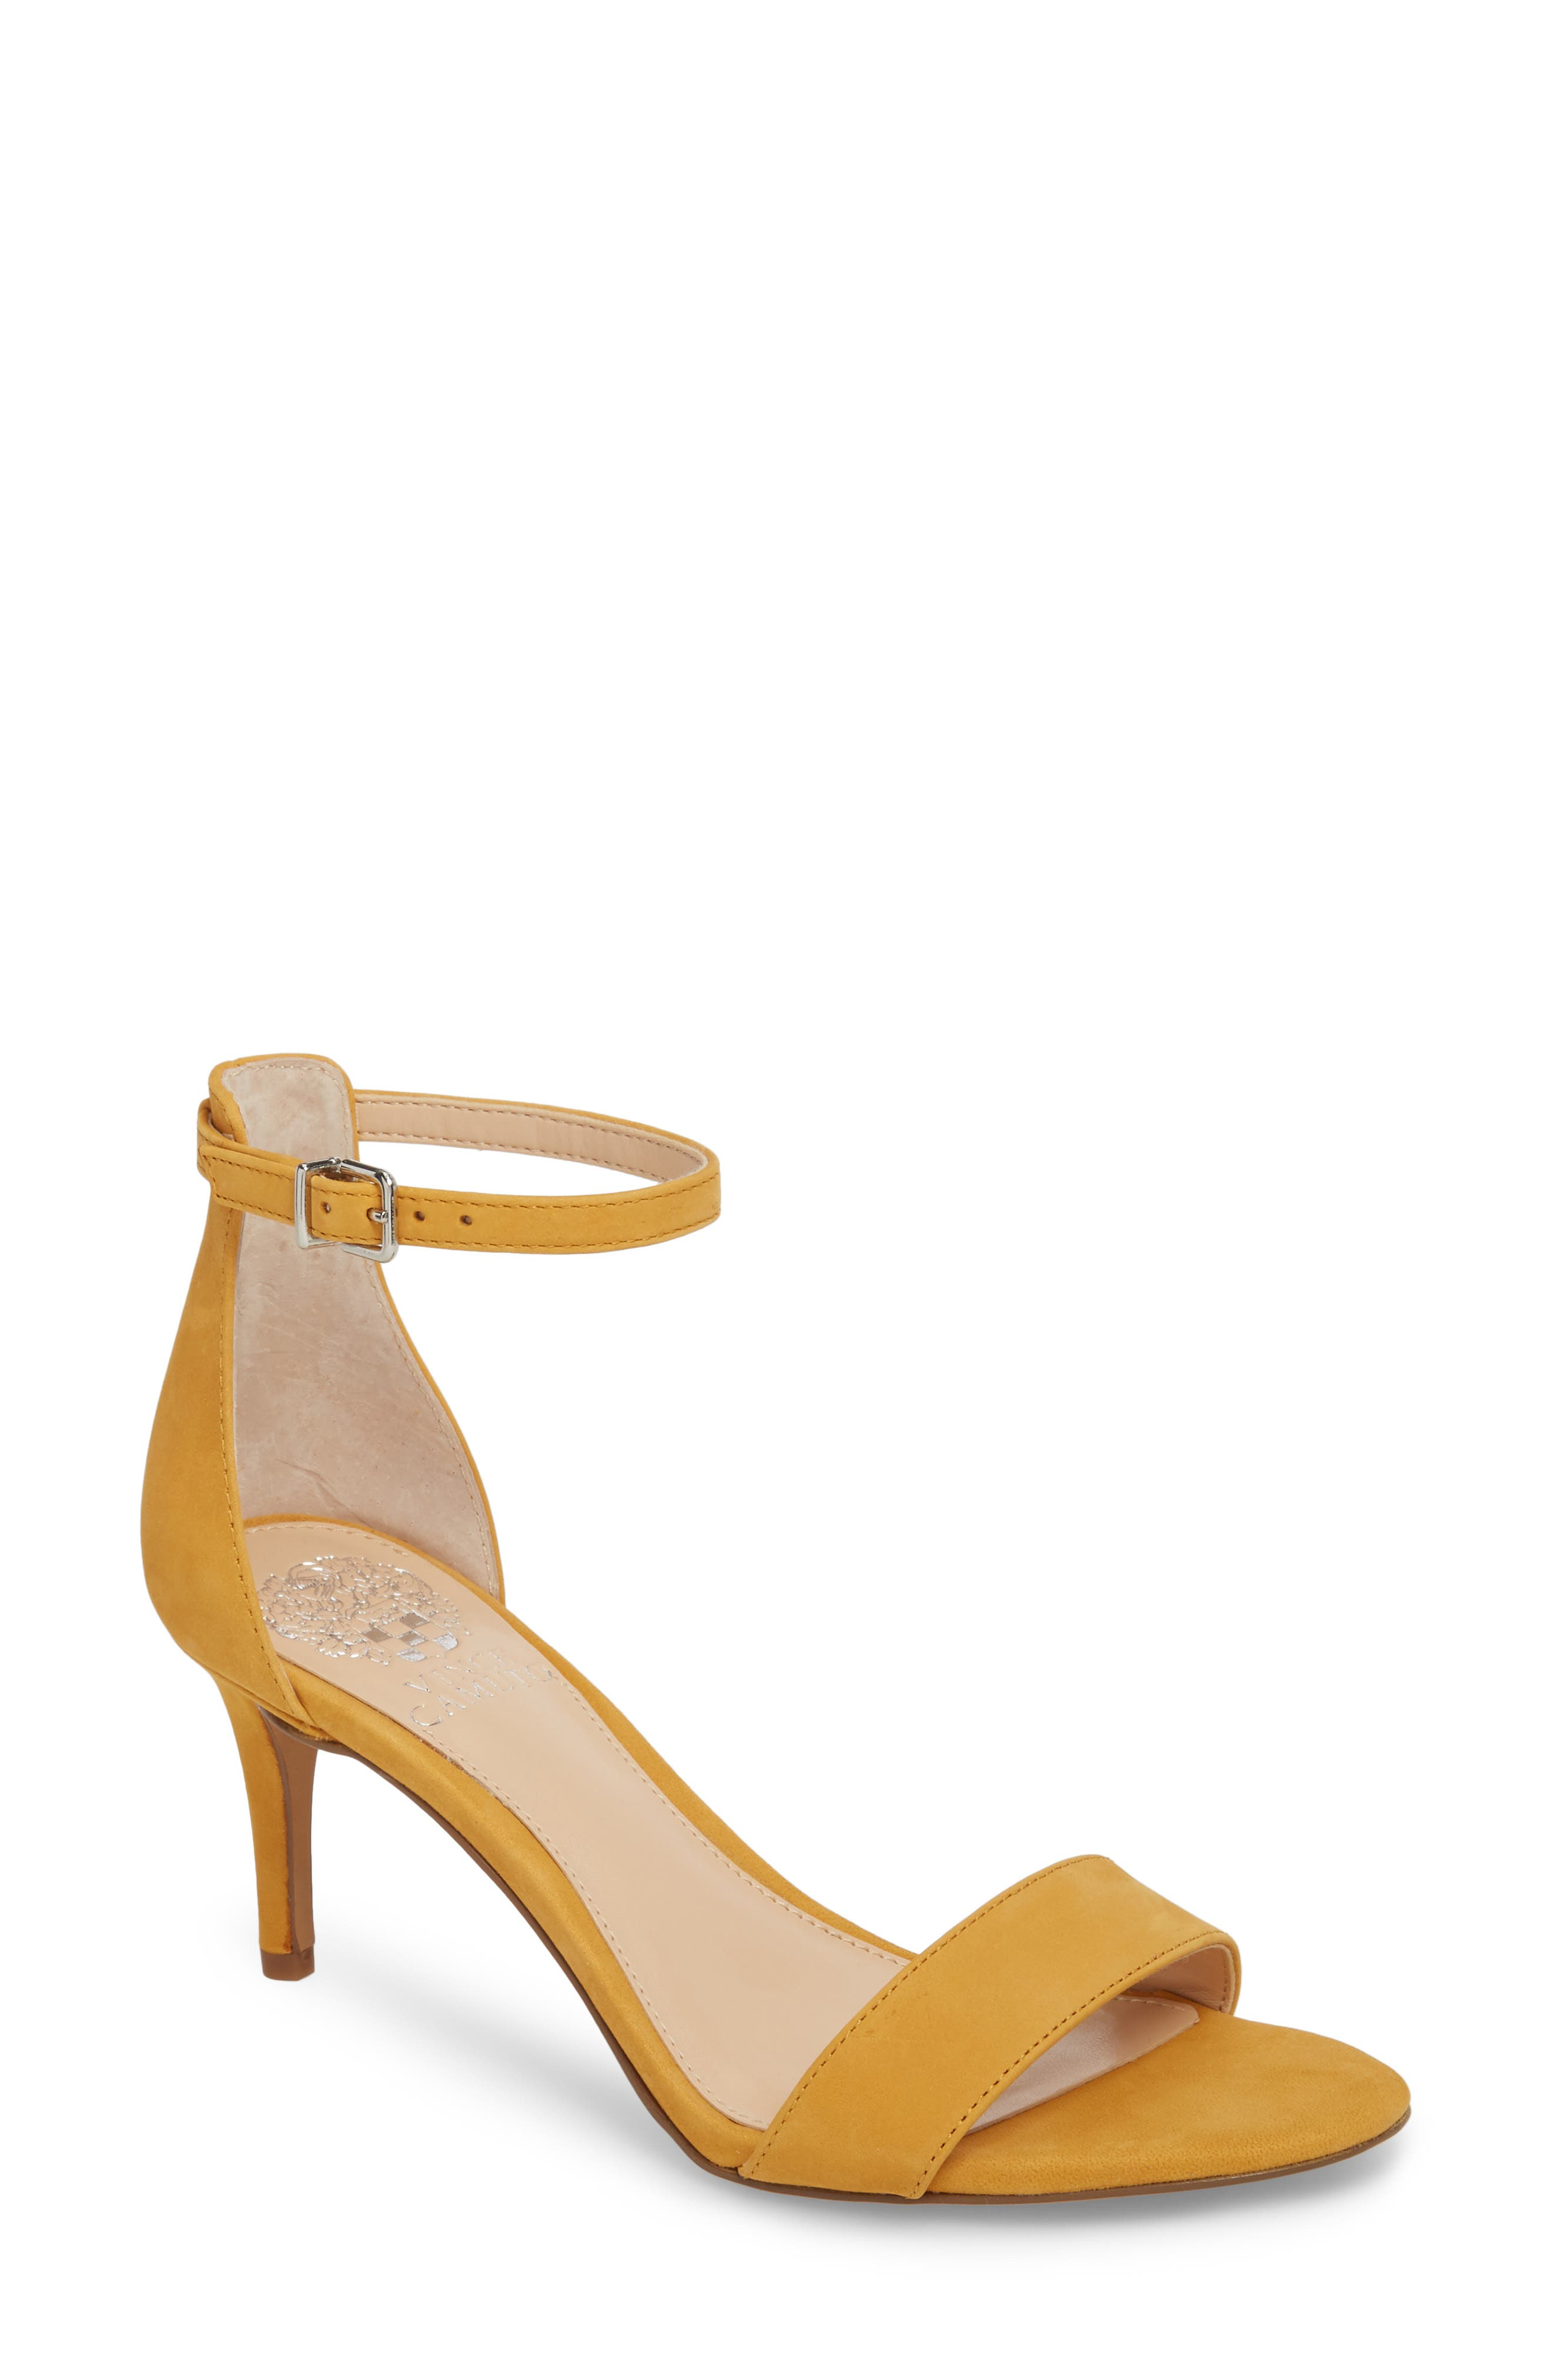 A slender heel adds just-right height to a barely there sandal topped with a dainty ankle strap. Style Name: Vince Camuto Sebatini Sandal (Women). Style Number: 5537278. Available in stores.